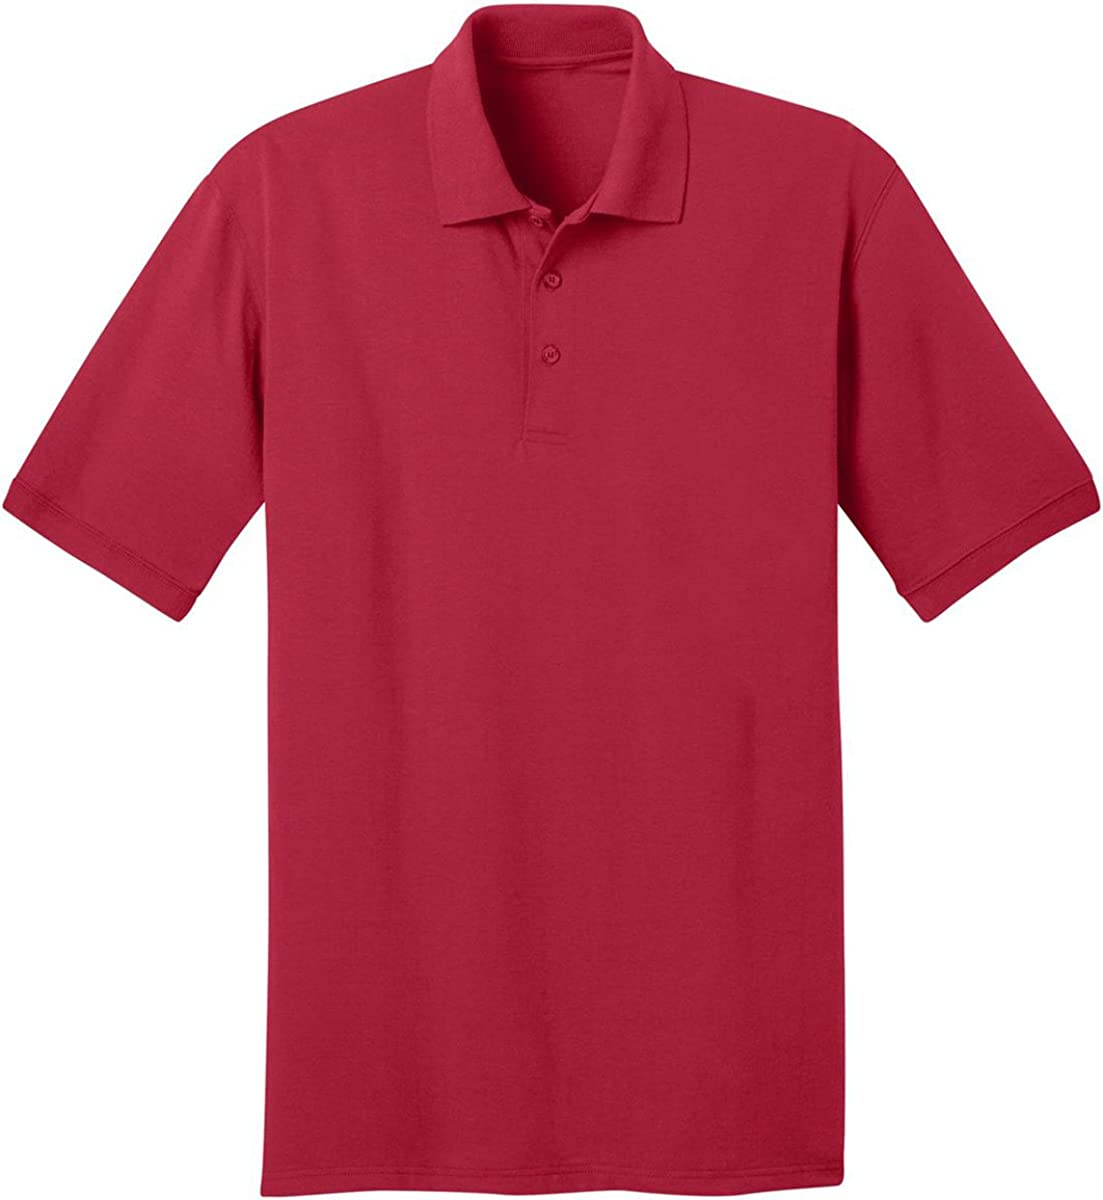 Port & Company - 5.5-Ounce Jersey Knit Pocket Polo Shirt. KP55P - XXX-Large - Red